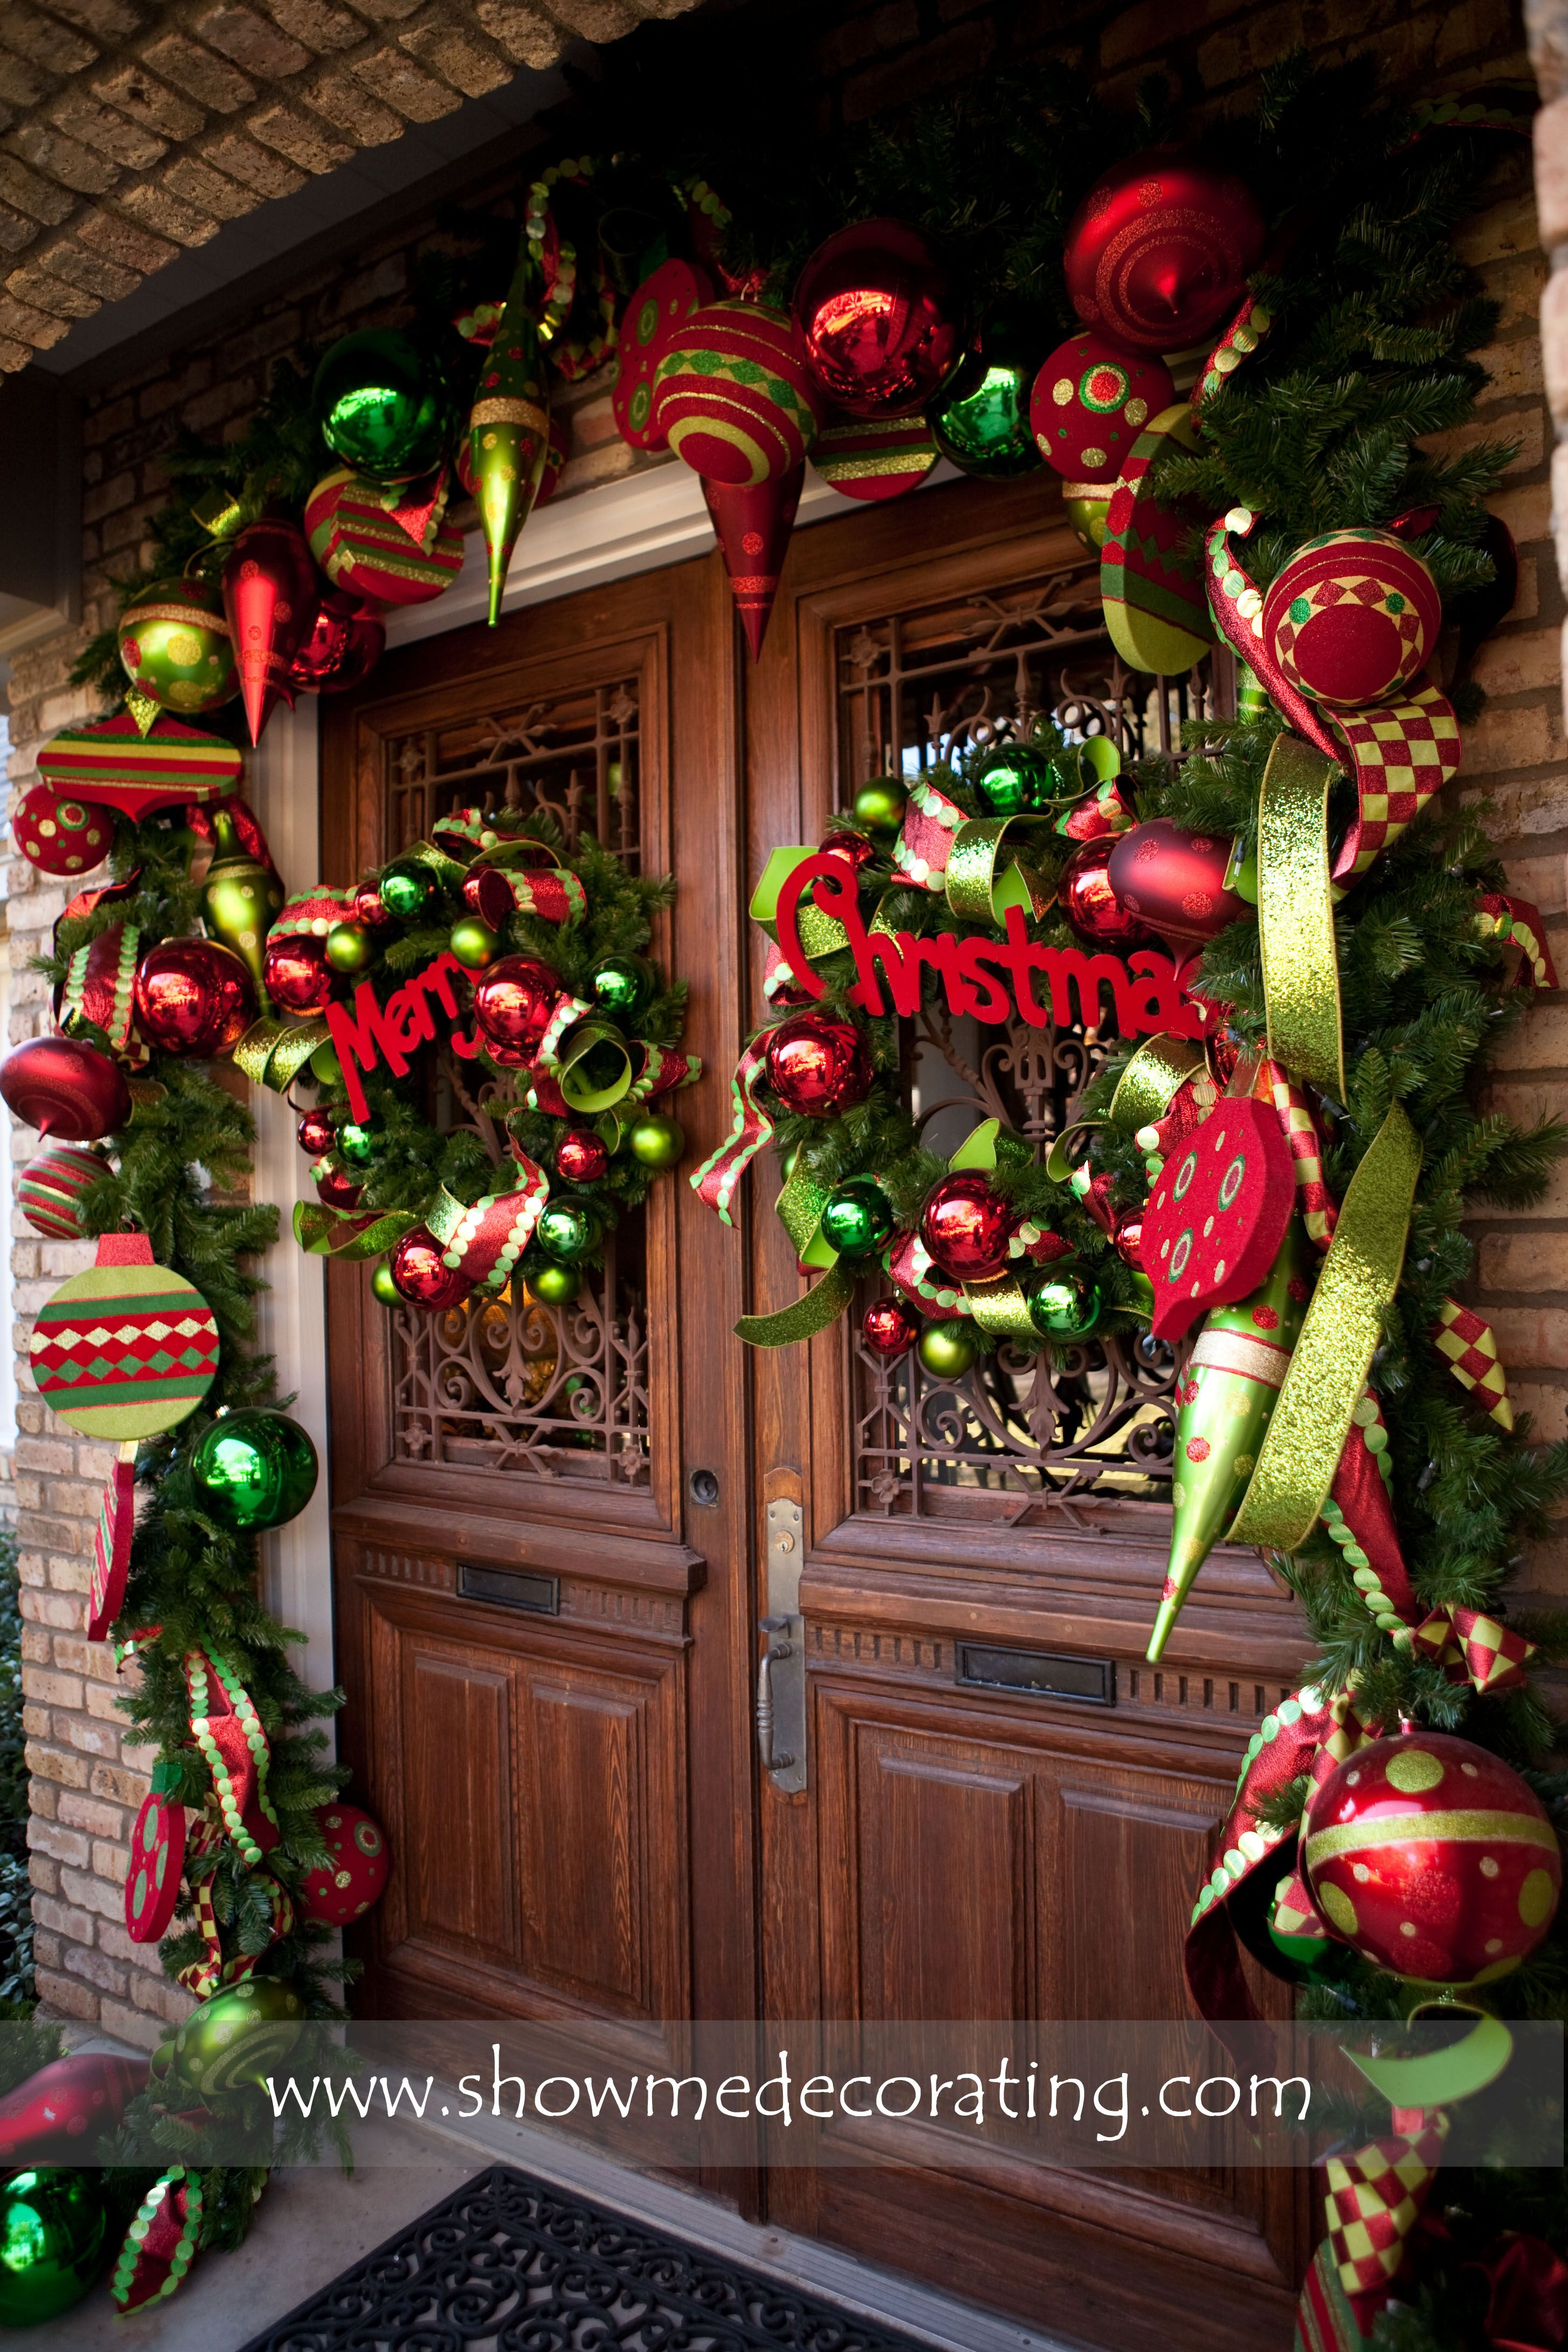 Christmas Garland And Matching Wreaths Make This Doorway